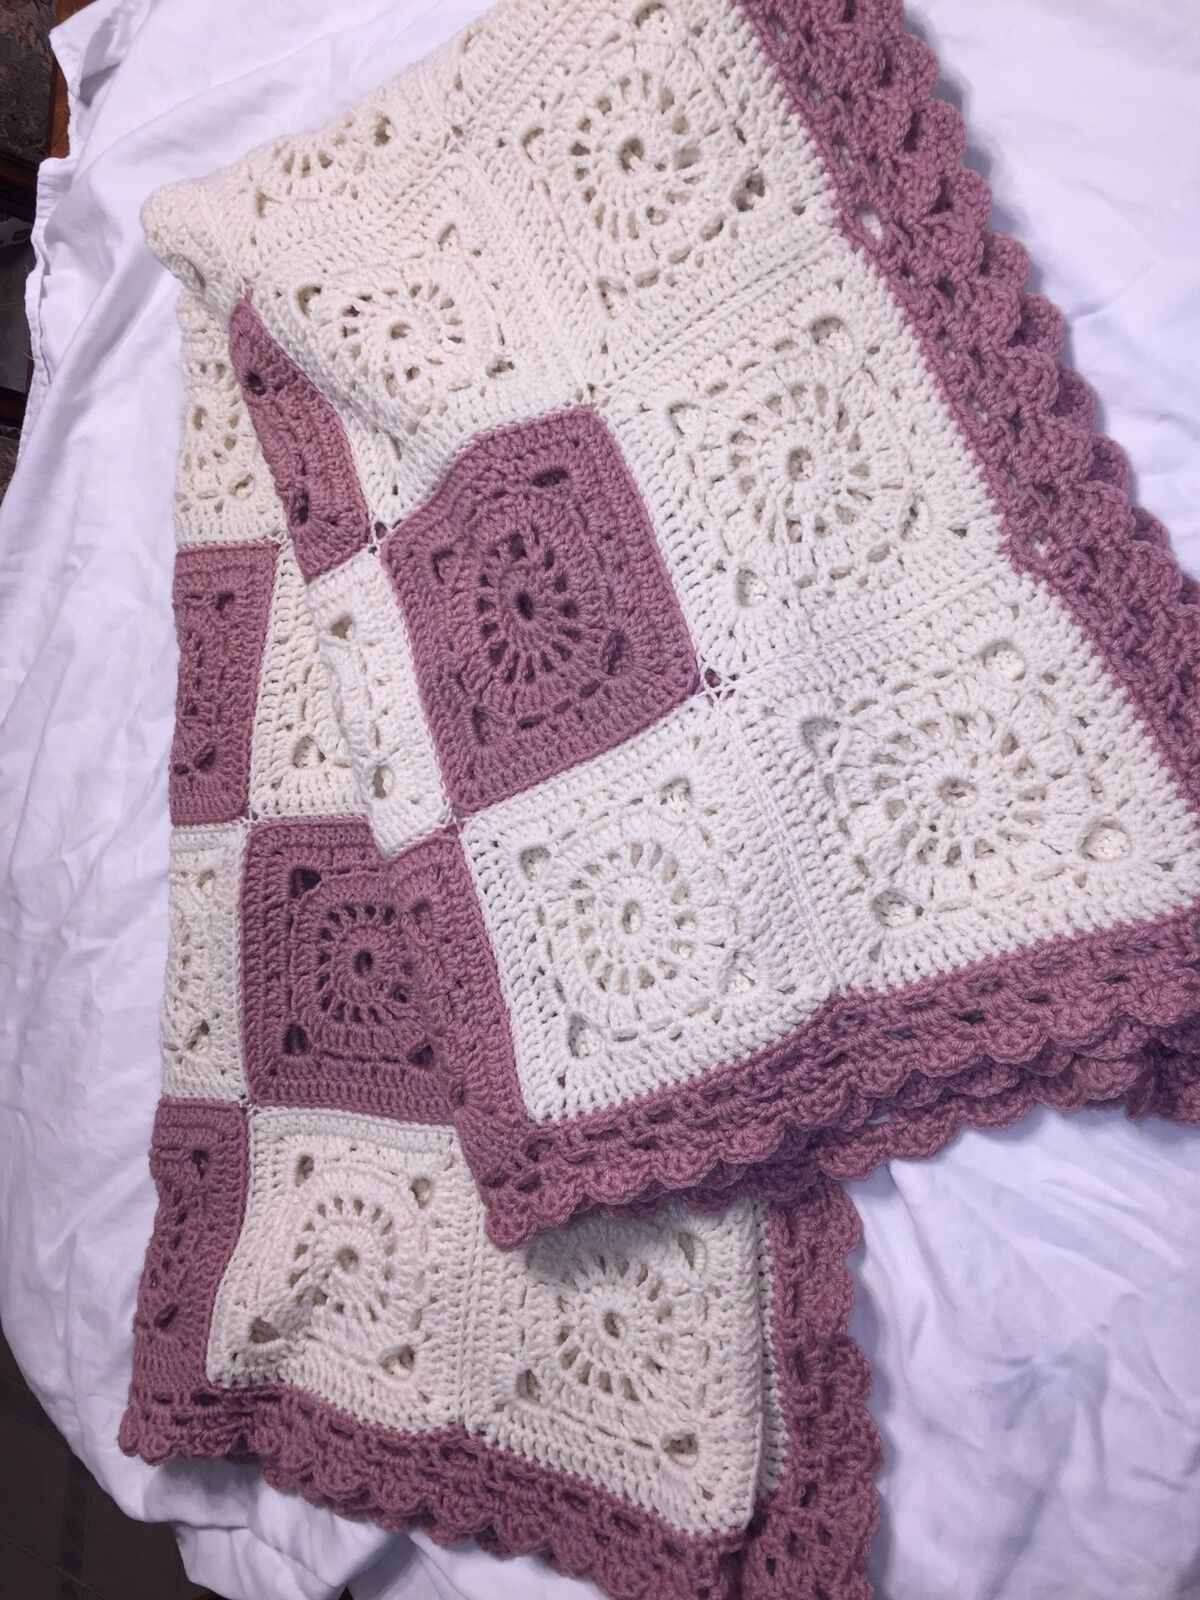 84 X 65 Handmade Crocheted Blanket